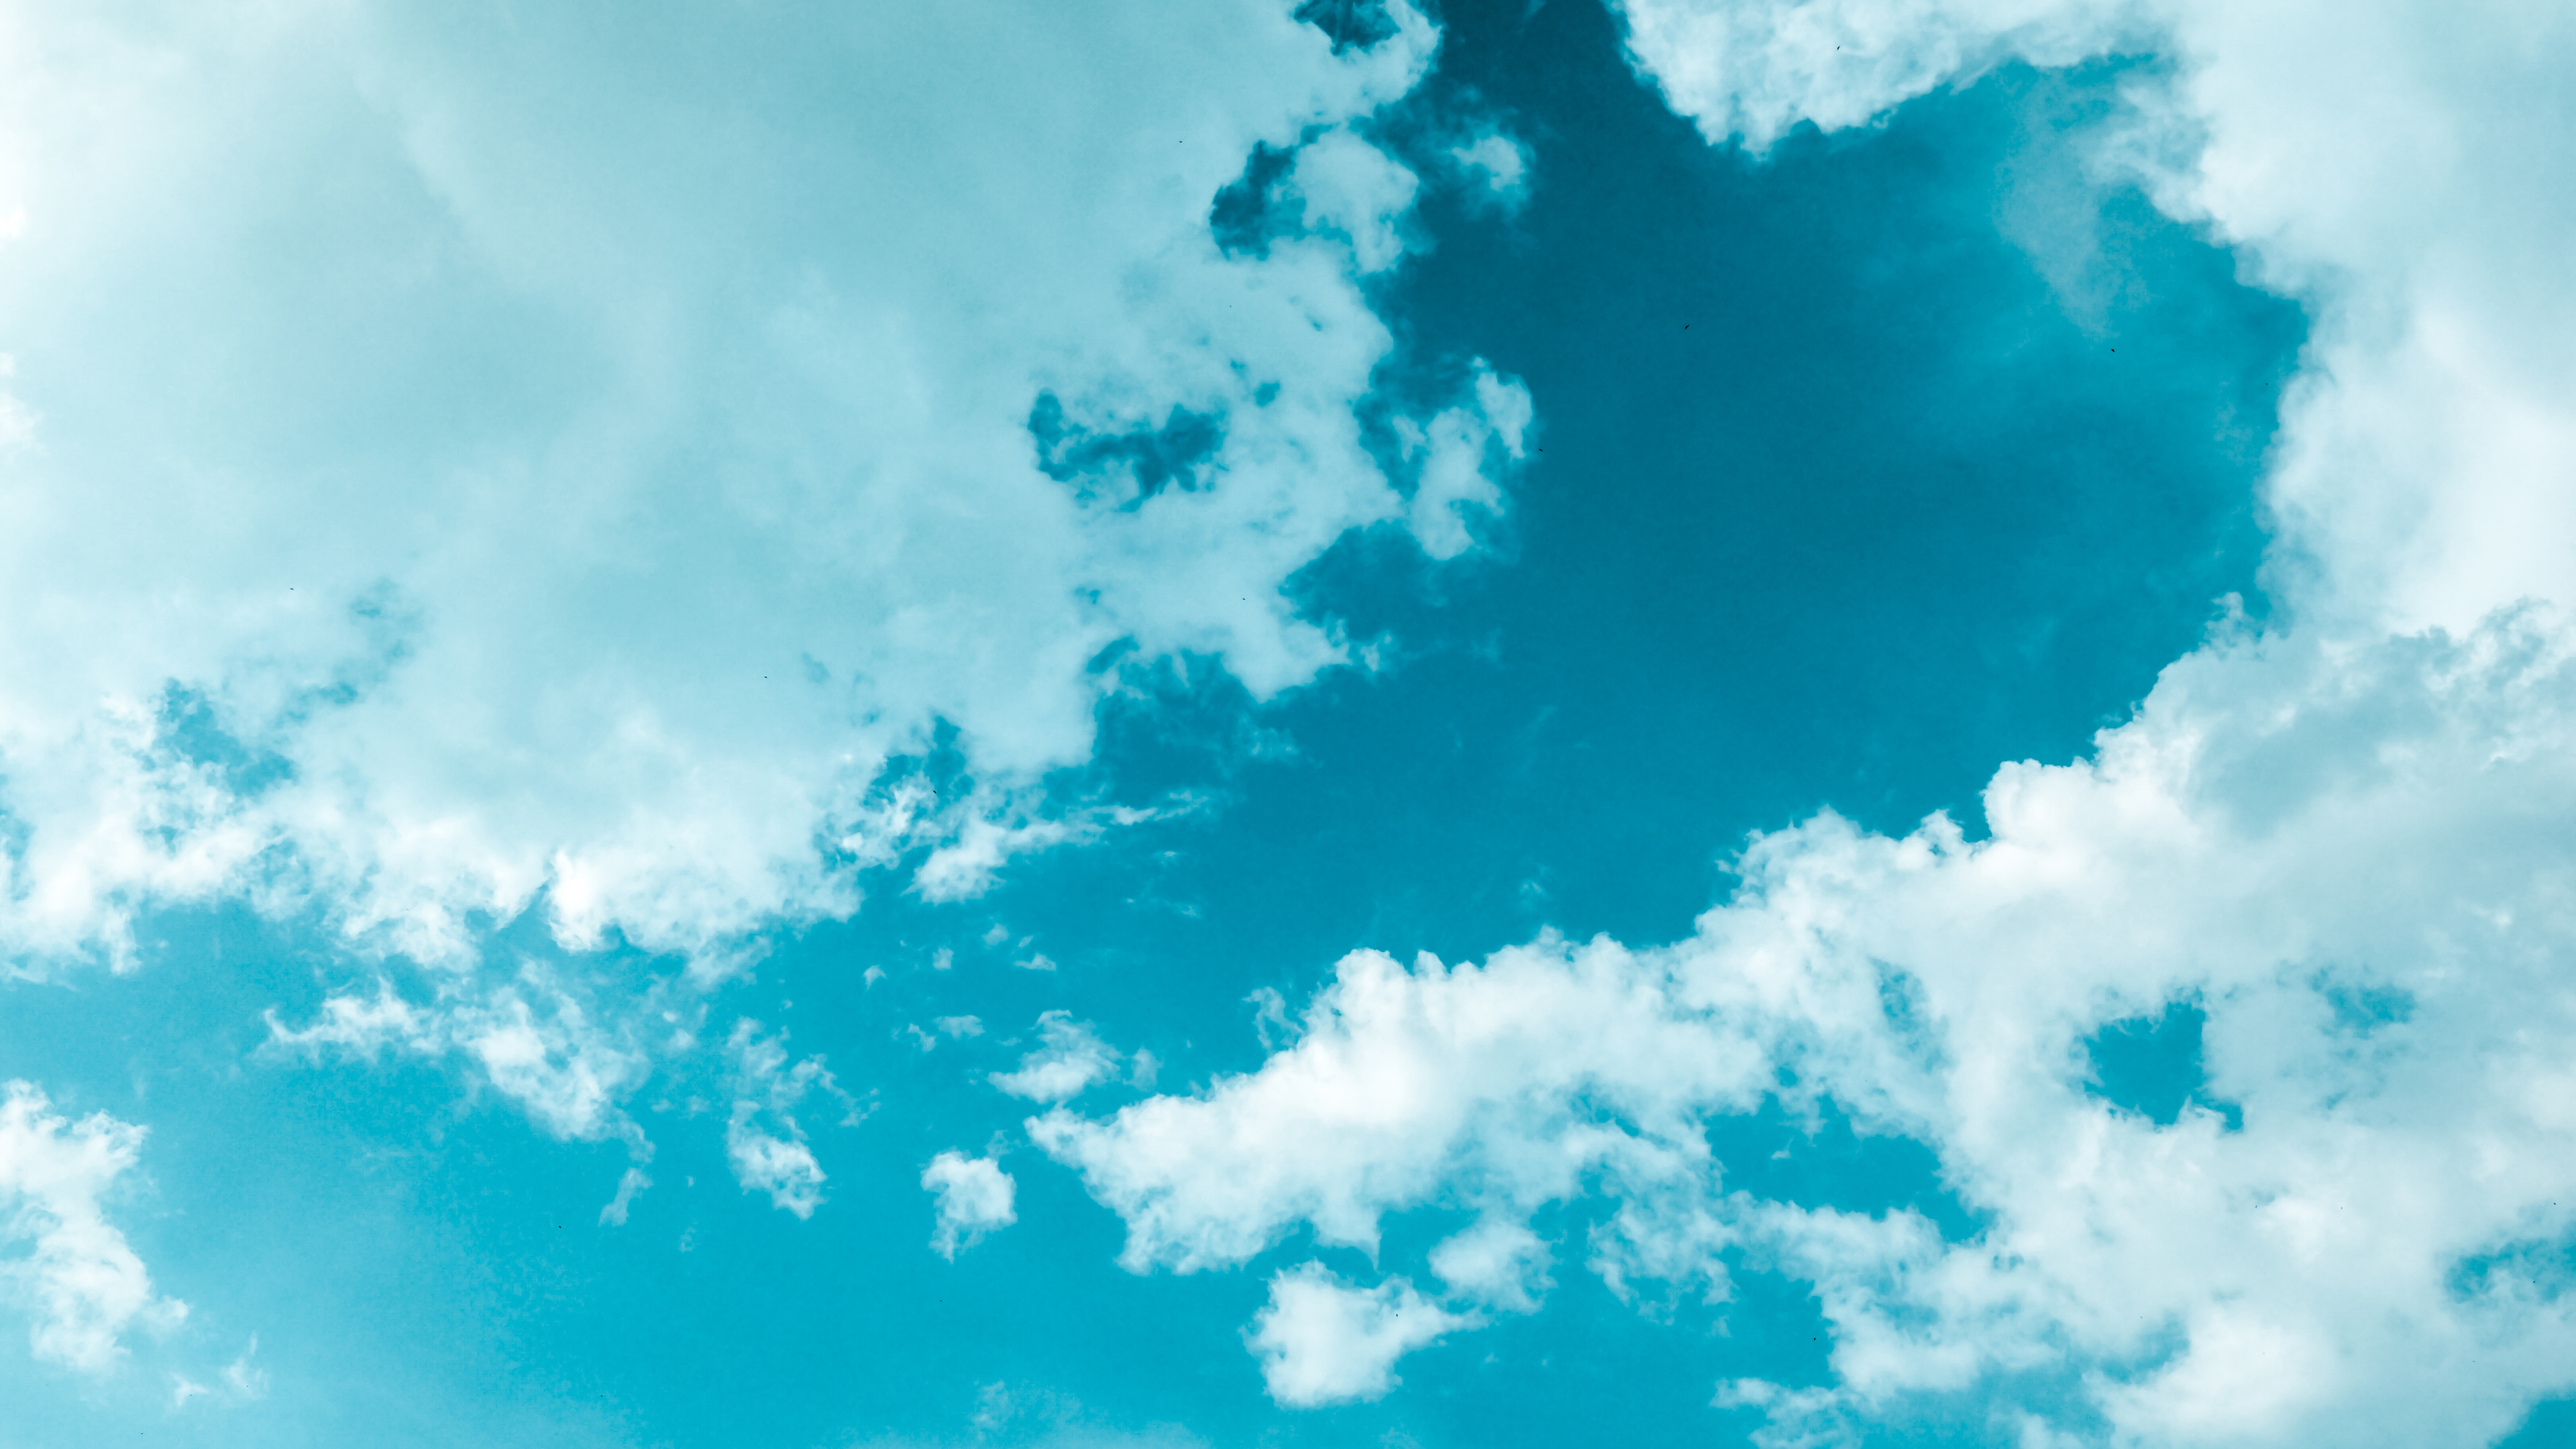 4k clouds 1540136332 - 4k Clouds - nature wallpapers, hd-wallpapers, clouds wallpapers, 5k wallpapers, 4k-wallpapers